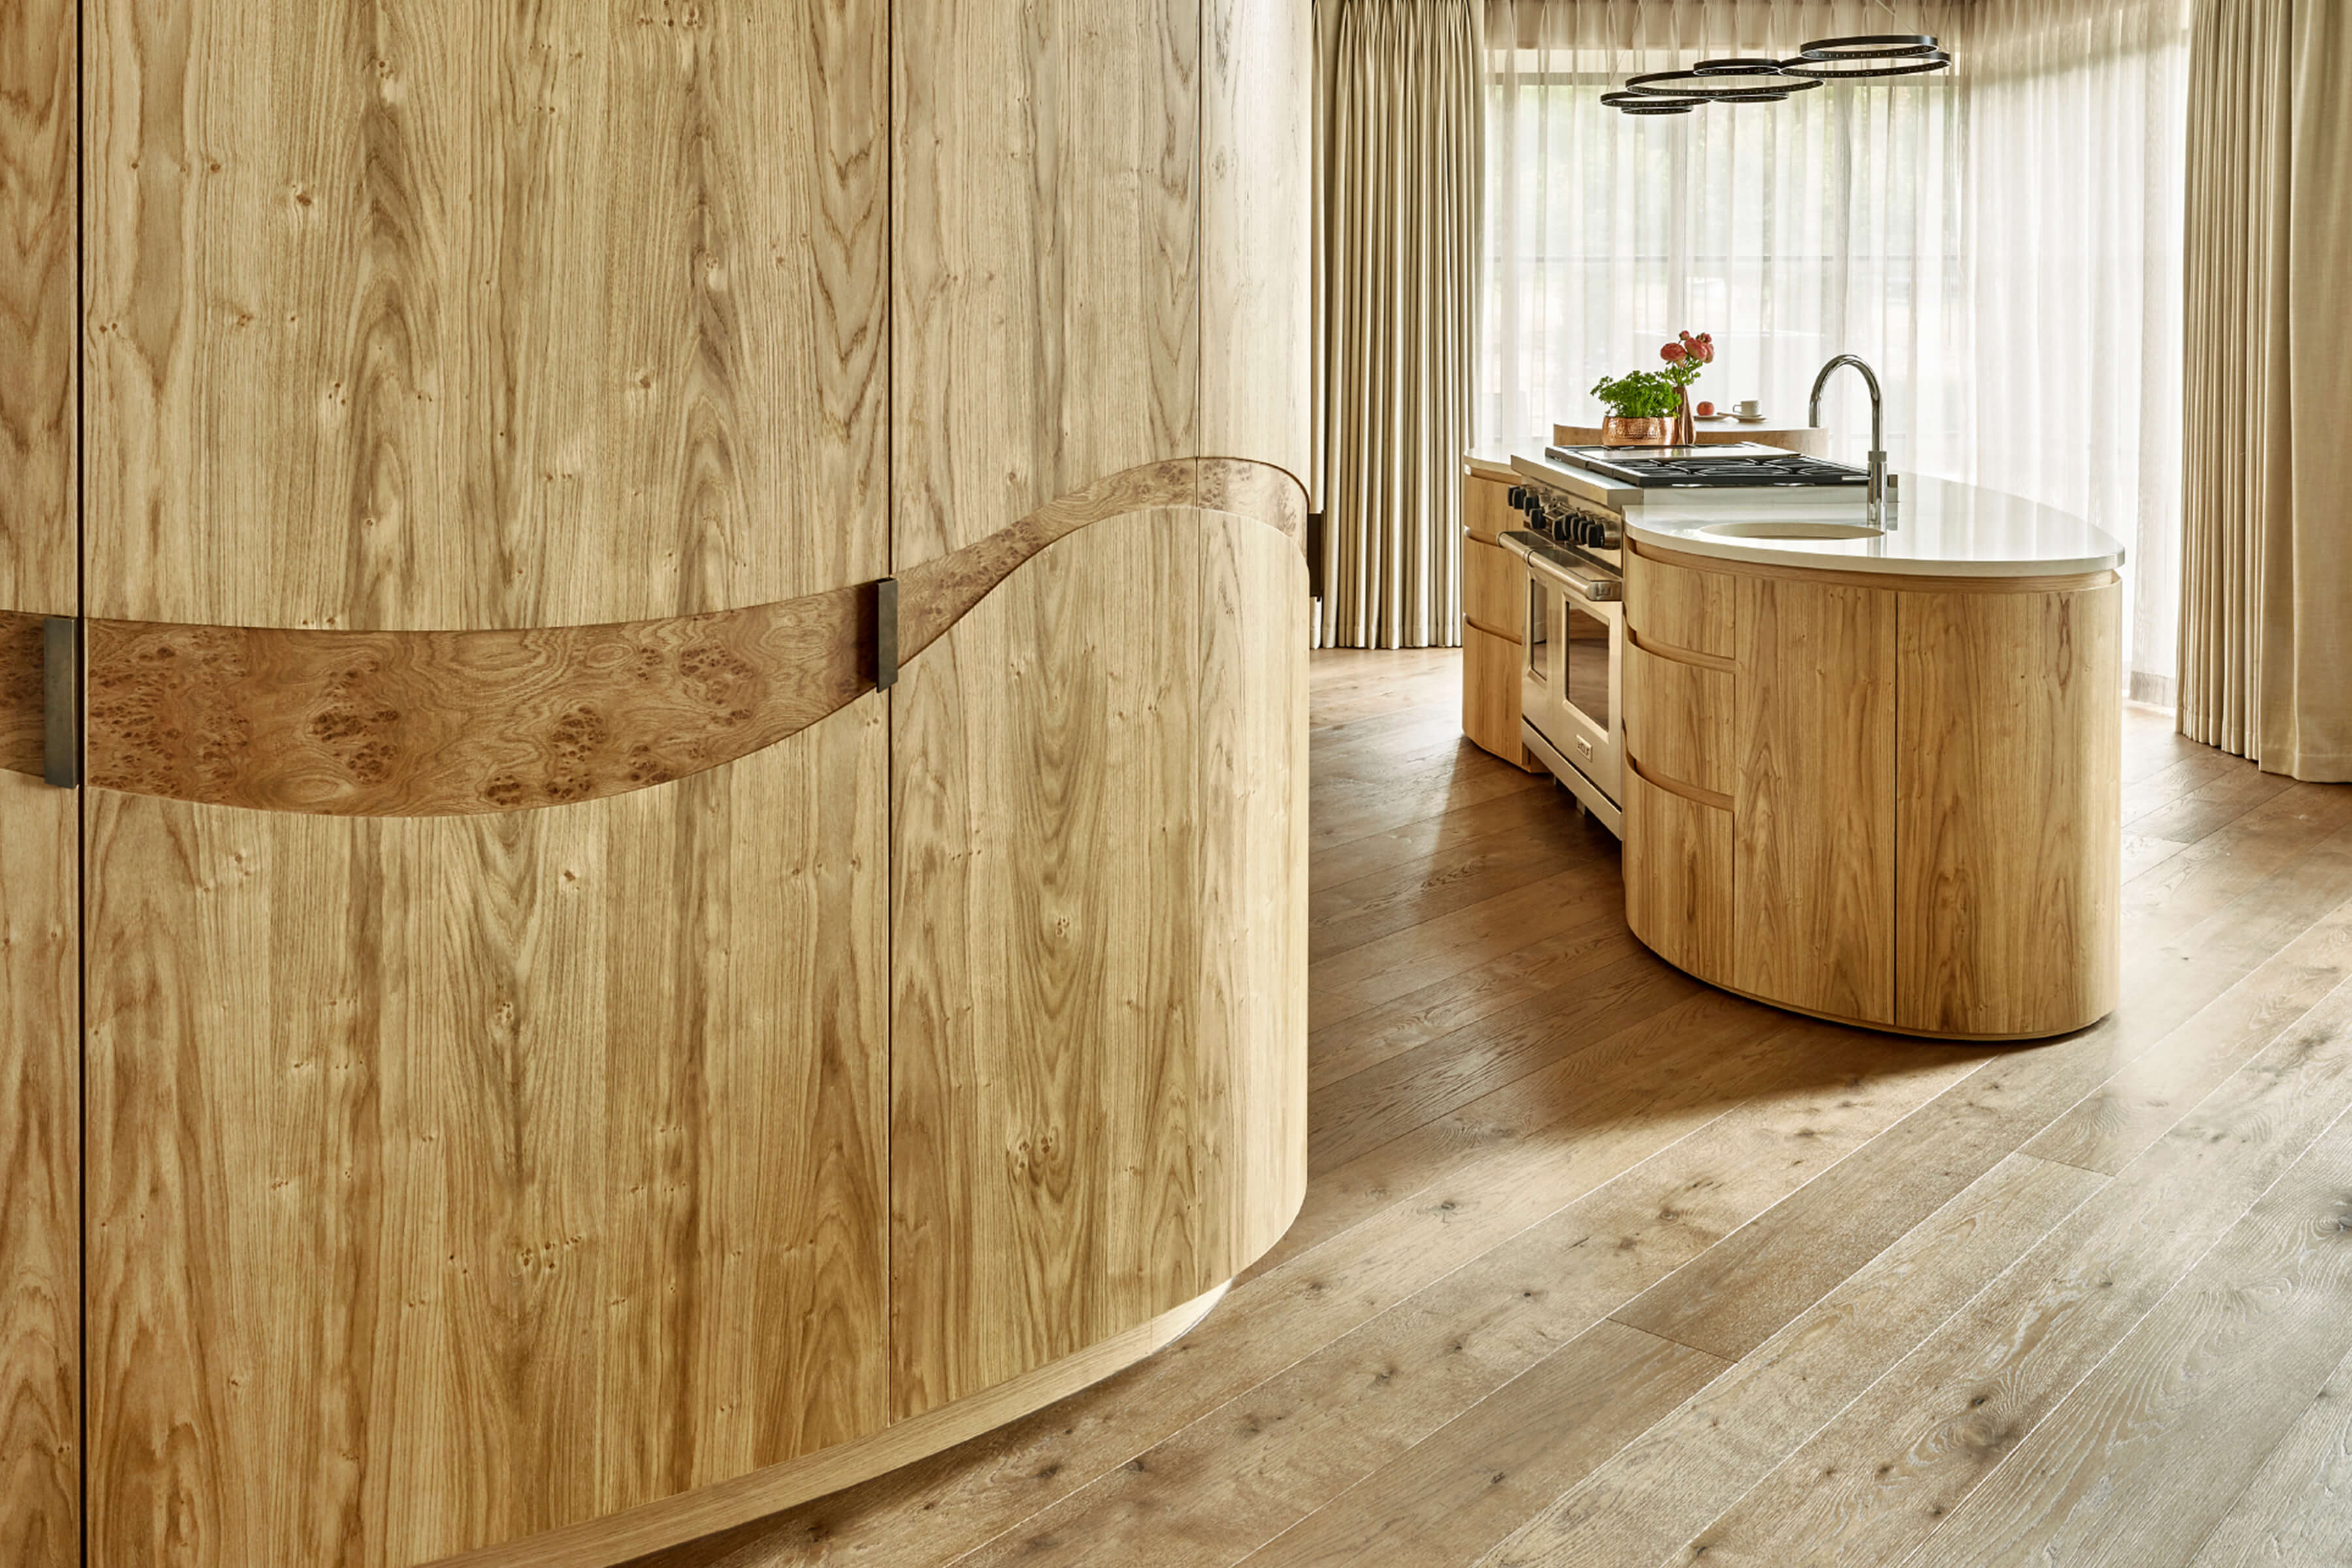 Custom made curved kitchen cabinetry in natural woods